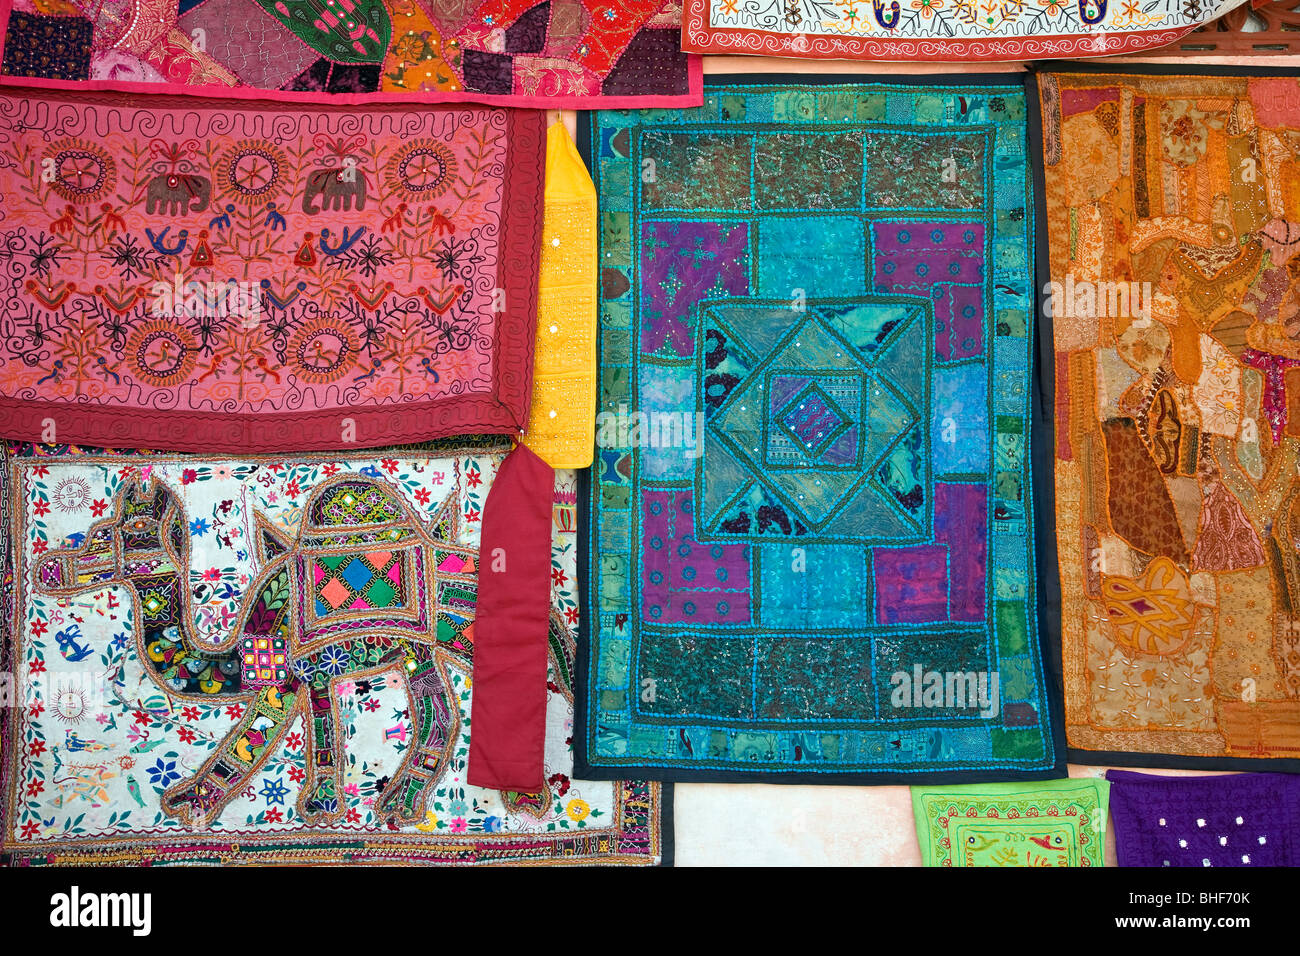 Patchwork textile. Bundi. Le Rajasthan. L'Inde Photo Stock